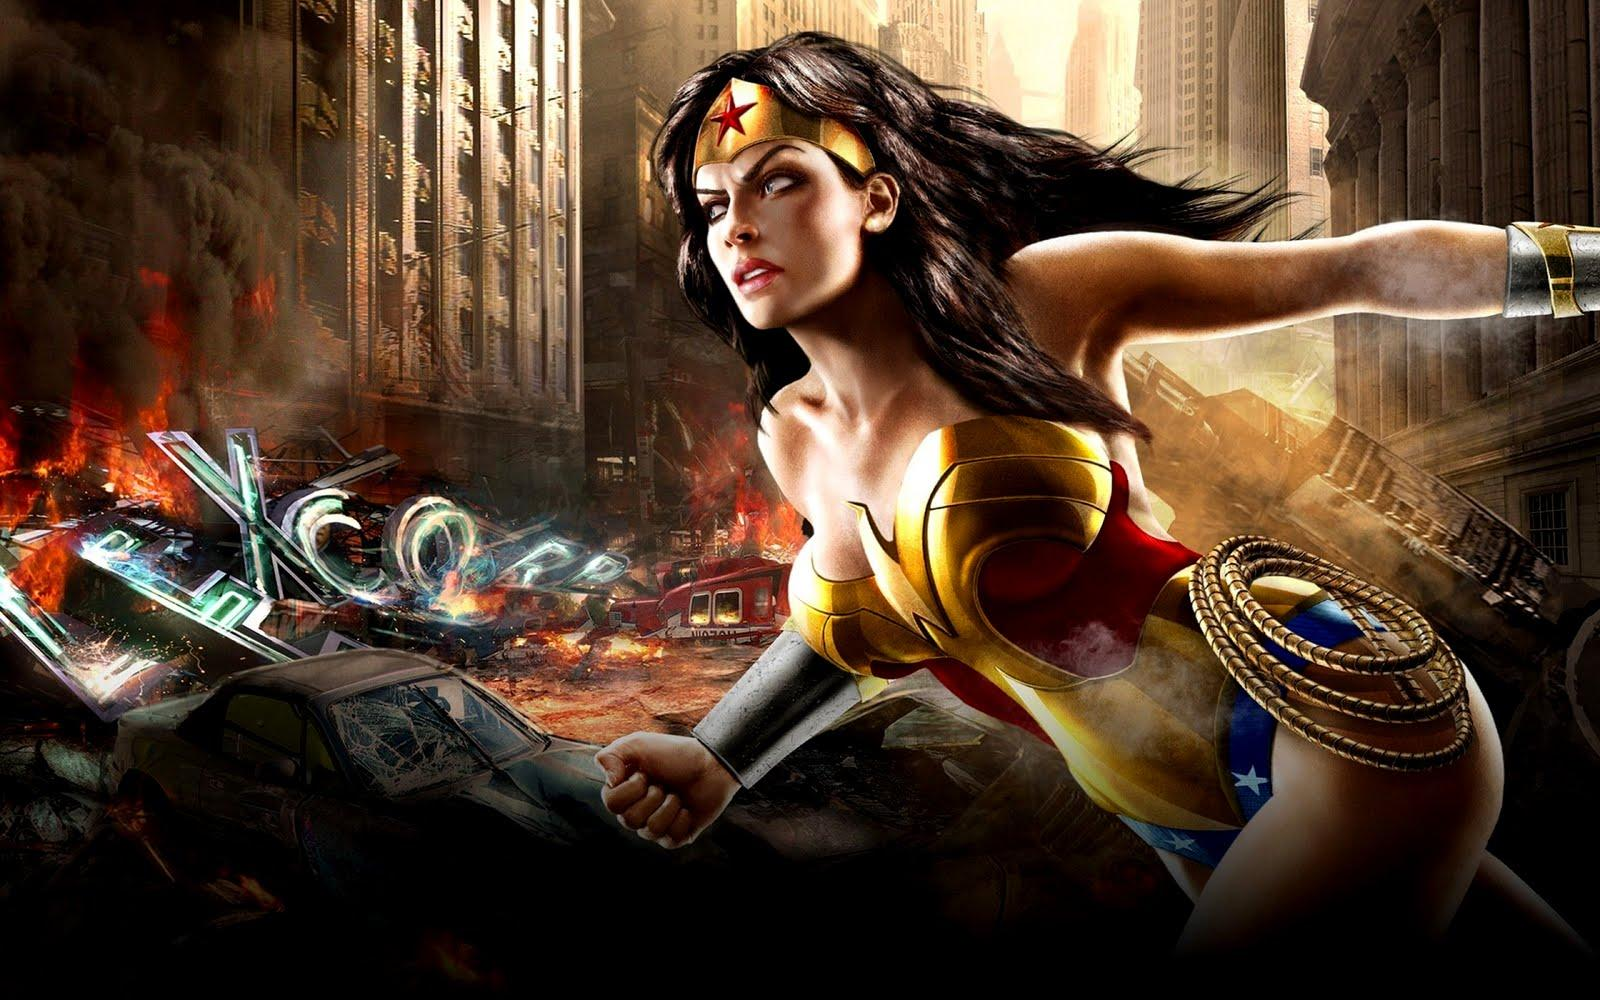 dc heroes hd wallpapers - wallpaper cave